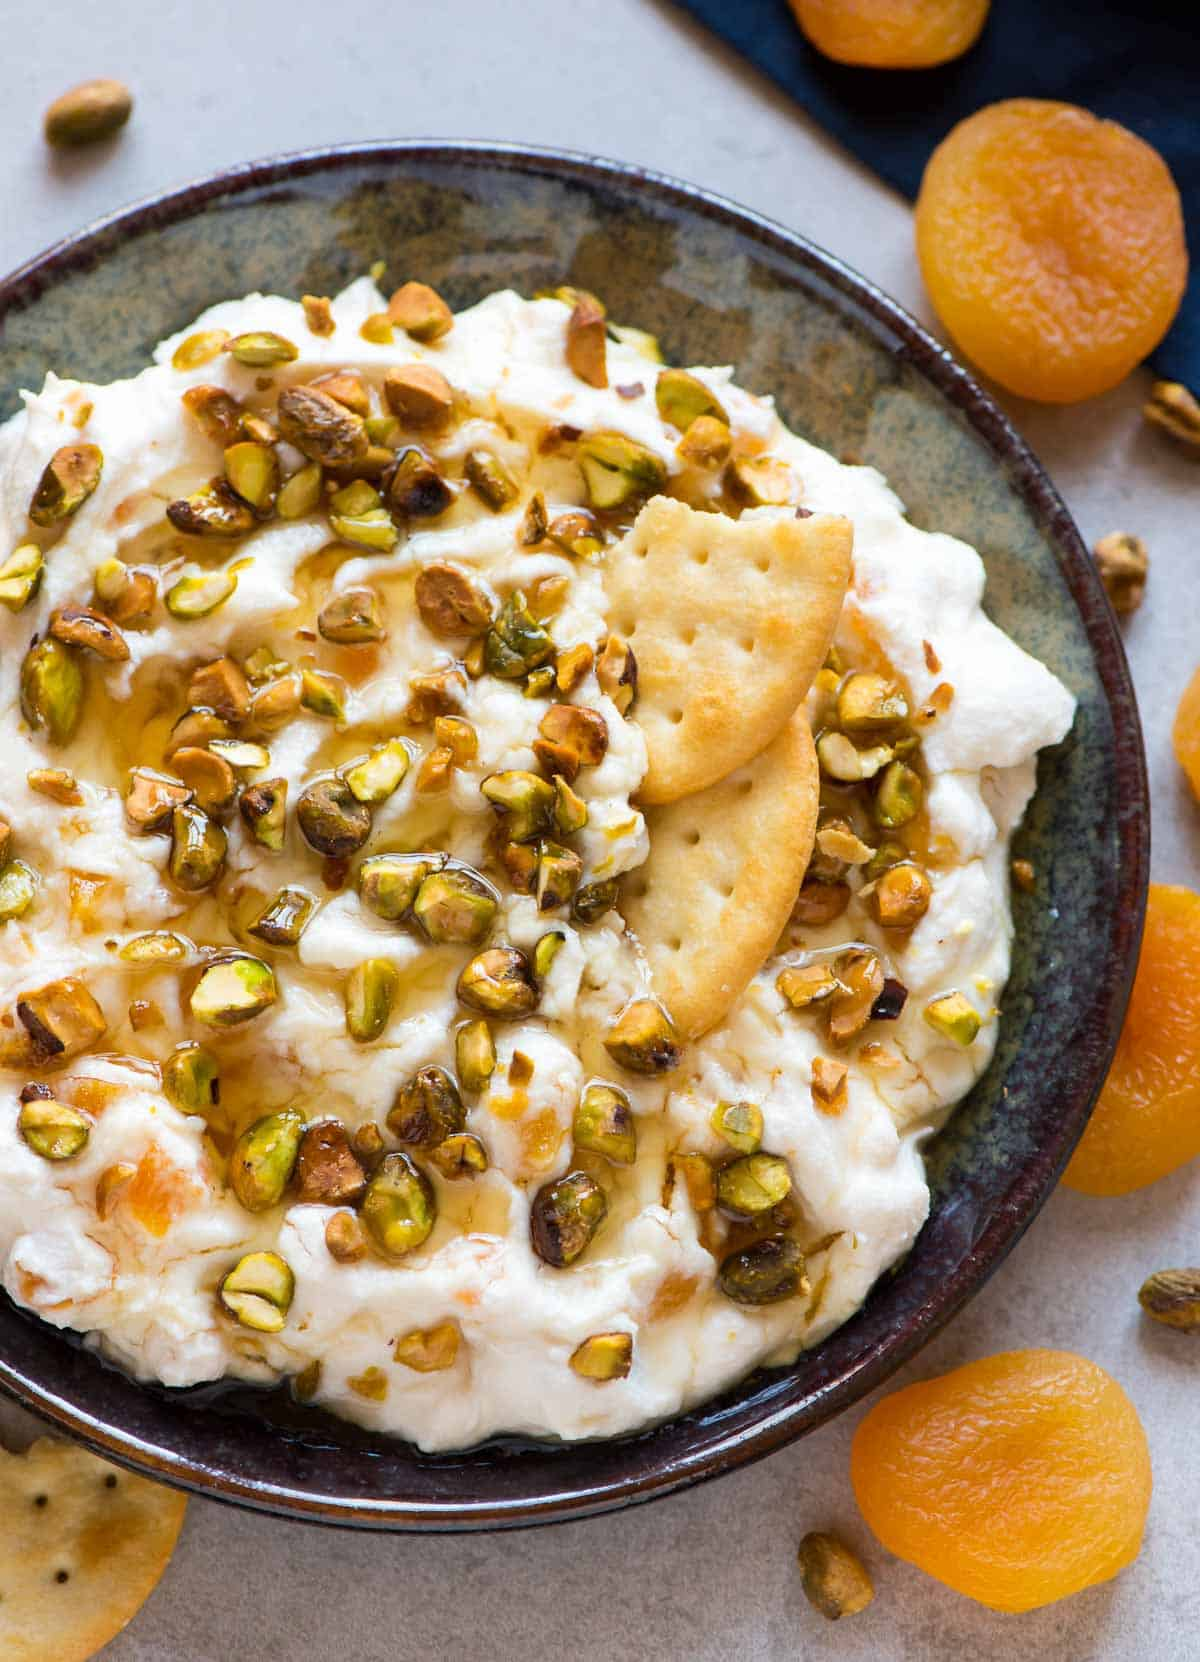 Honey Ricotta Dip With Pistachio And Apricot